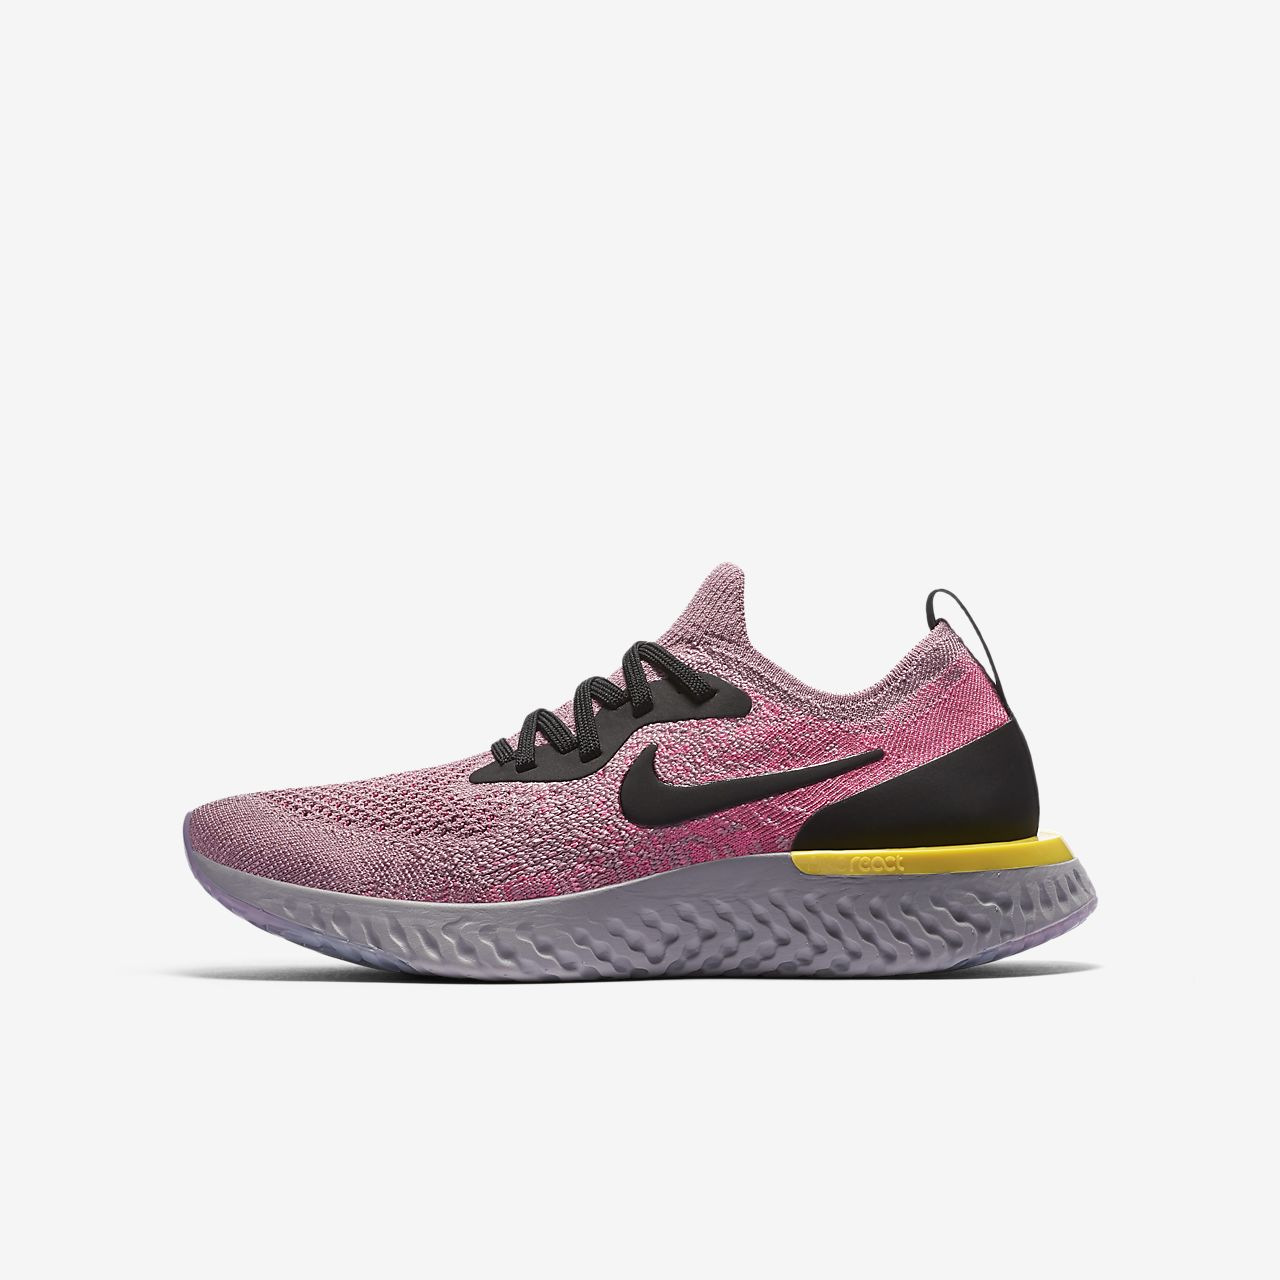 a0fb1a84fd30e Nike Epic React Flyknit 1 Older Kids  Running Shoe. Nike.com PT